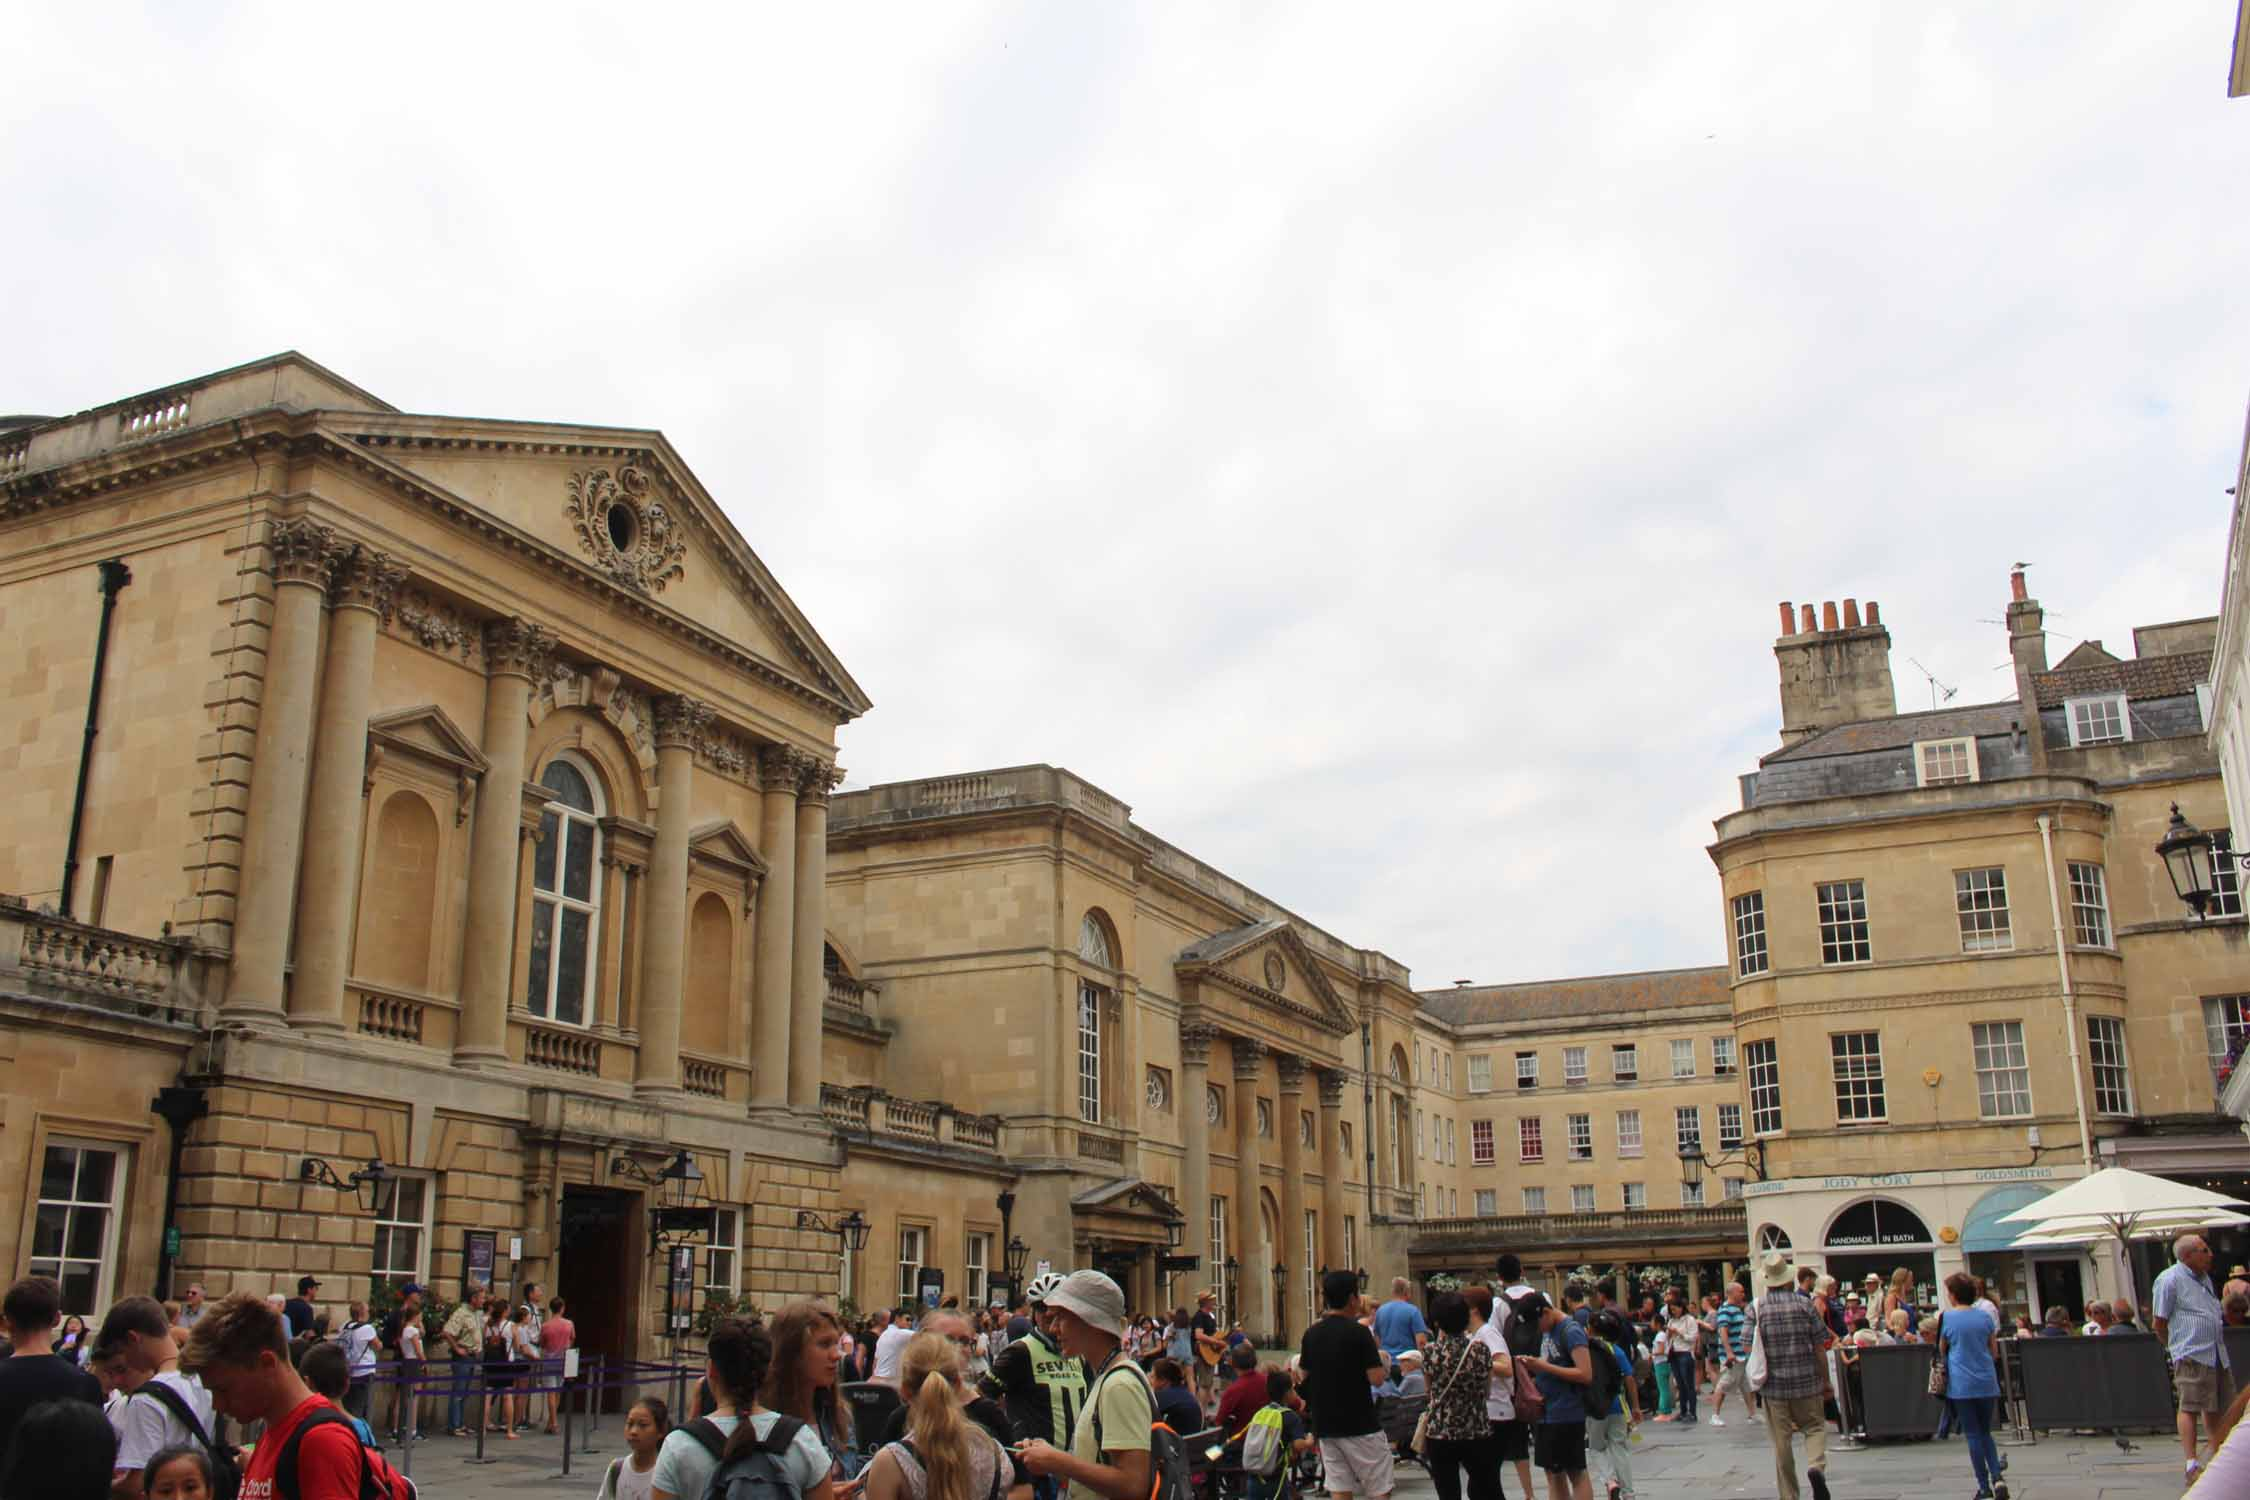 England, Bath, Pump Room square